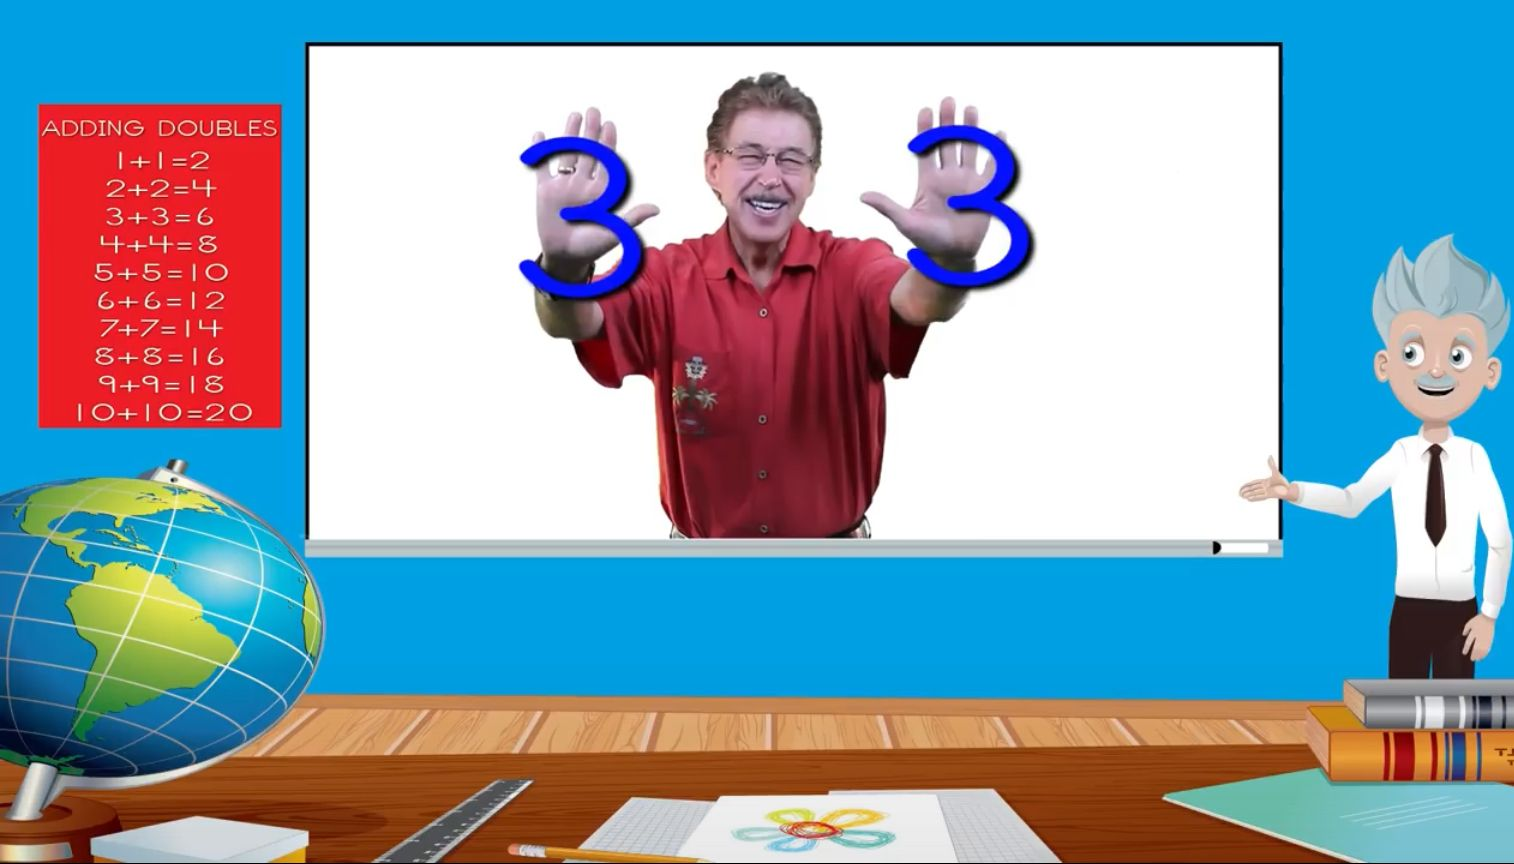 Adding Doubles Fun Math Song For Kids Jack Hartmann Youtube Math Songs Kids Songs Fun Math Adding doubles video song